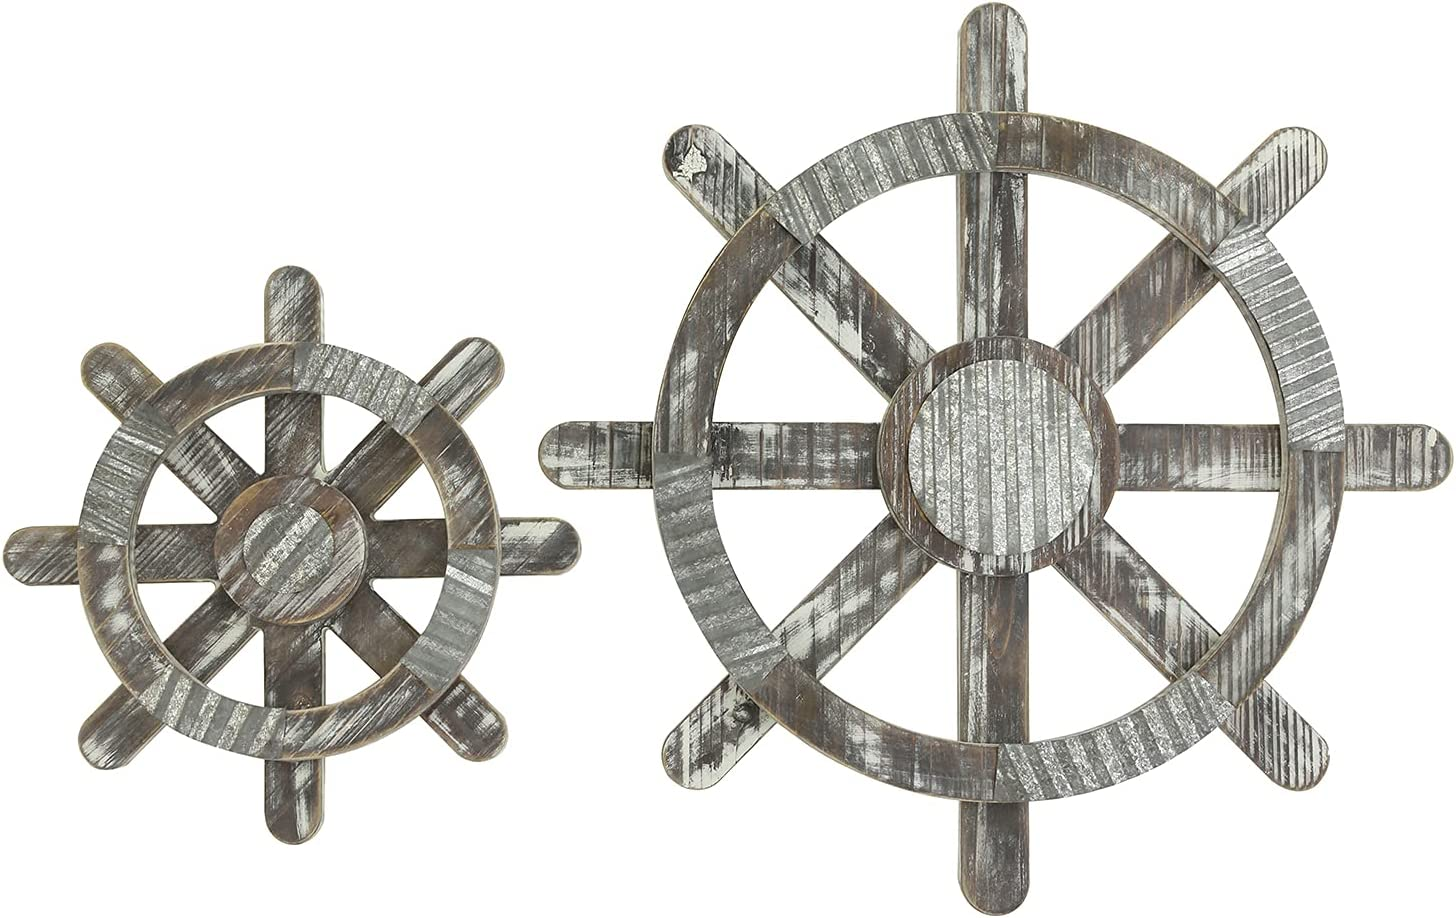 MyGift Wall Mounted Rustic Torched Wood and Galvanized Metal Home Art Nautical Style Hanging Décor Pirate Boat Ship Steering Wheels, Set of 2